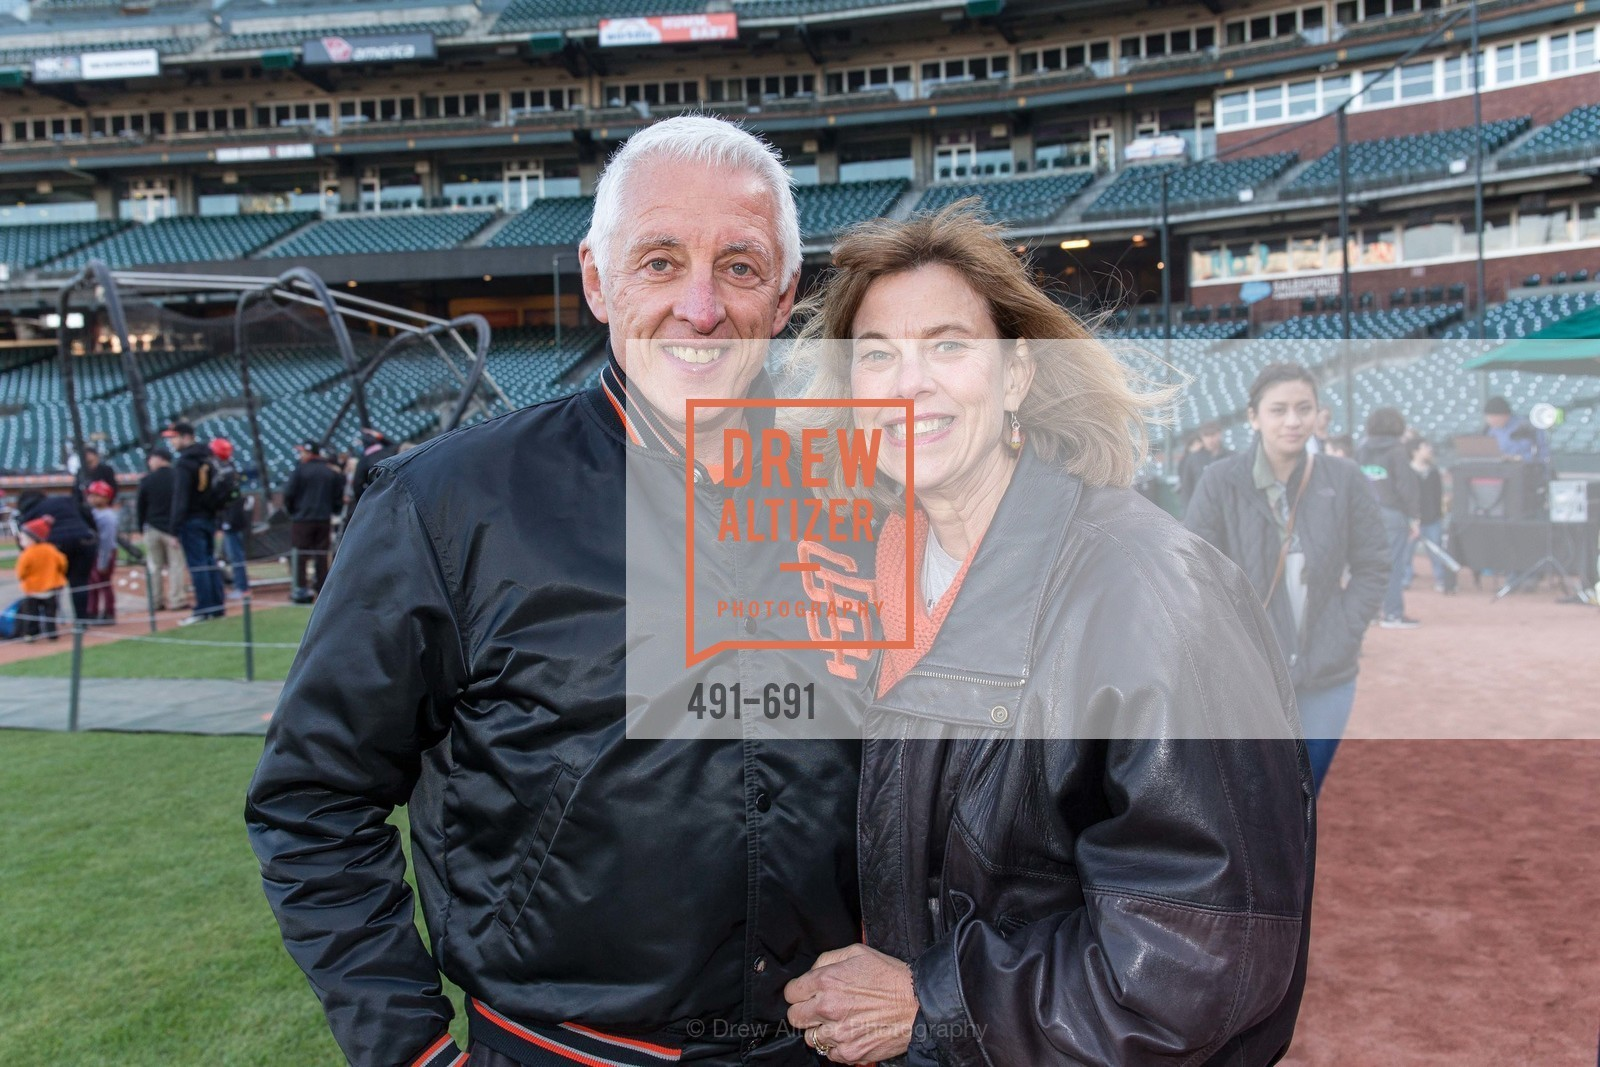 Alan Fox, Diane Flynn, ST. FRANCIS FOUNDATION'S Knock It Out of the Park, US, June 4th, 2015,Drew Altizer, Drew Altizer Photography, full-service agency, private events, San Francisco photographer, photographer california